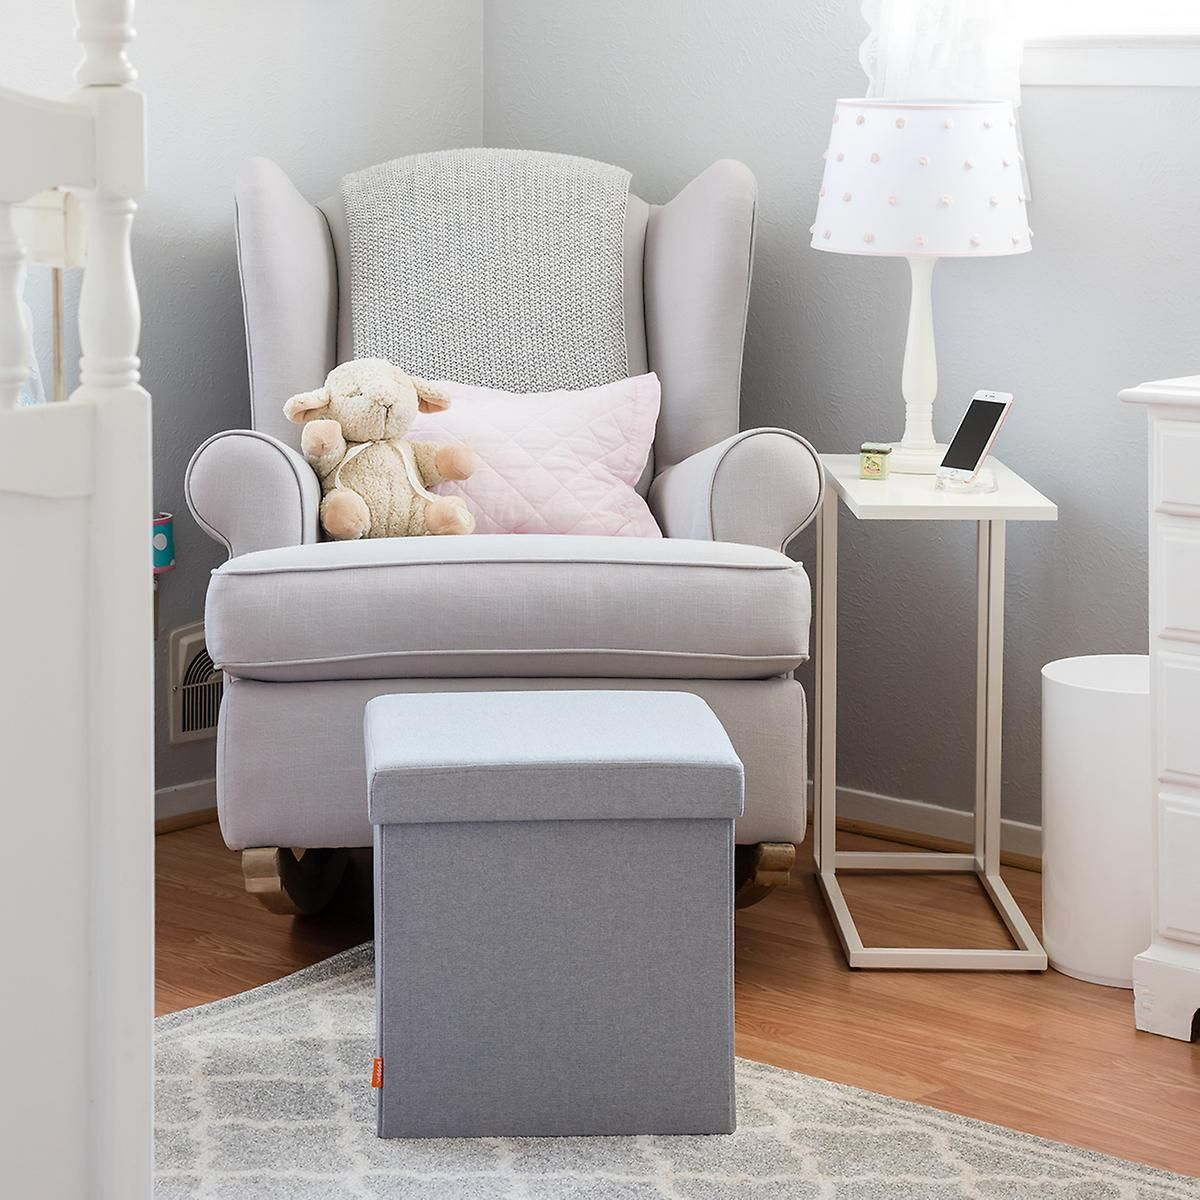 Light Grey Poppin Box Seat Storage Bench Seating Blue Dining Room Chairs Bedroom Seating #toddler #living #room #chair